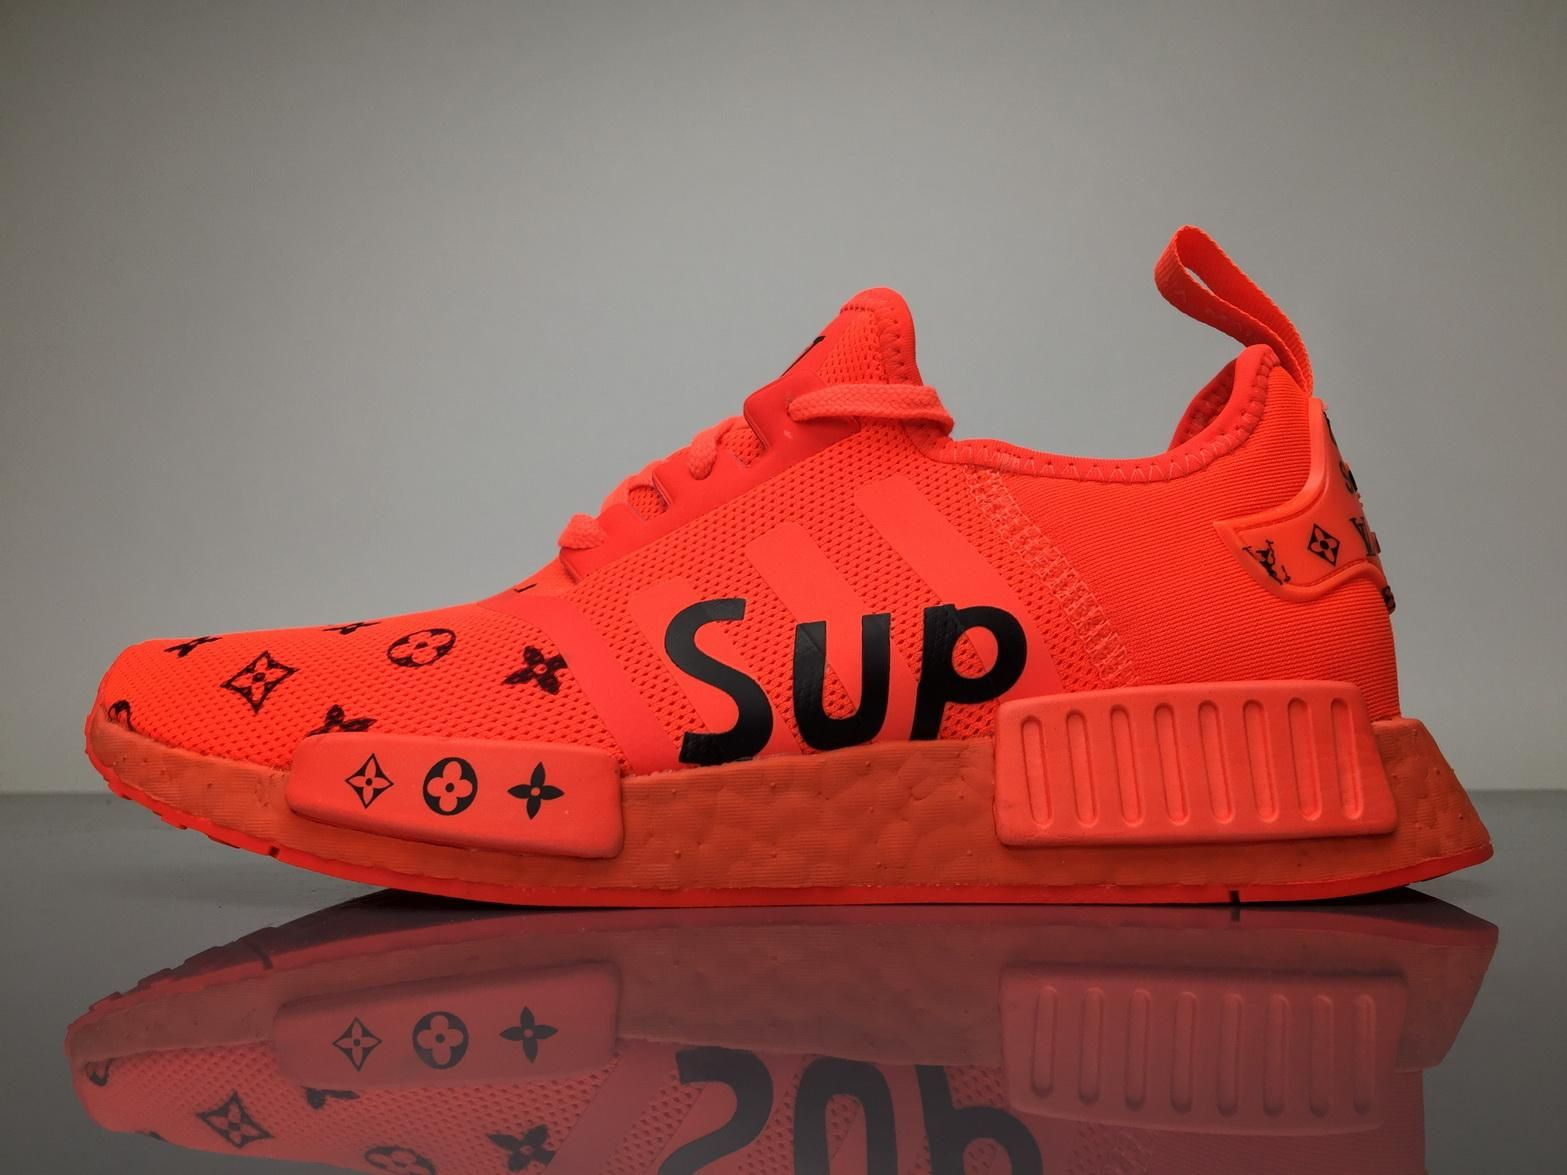 best website a2945 82396 LOUIS VUITTON X SUPREME X ADIDAS NMD. Find this Pin and more on Shoes!! ...